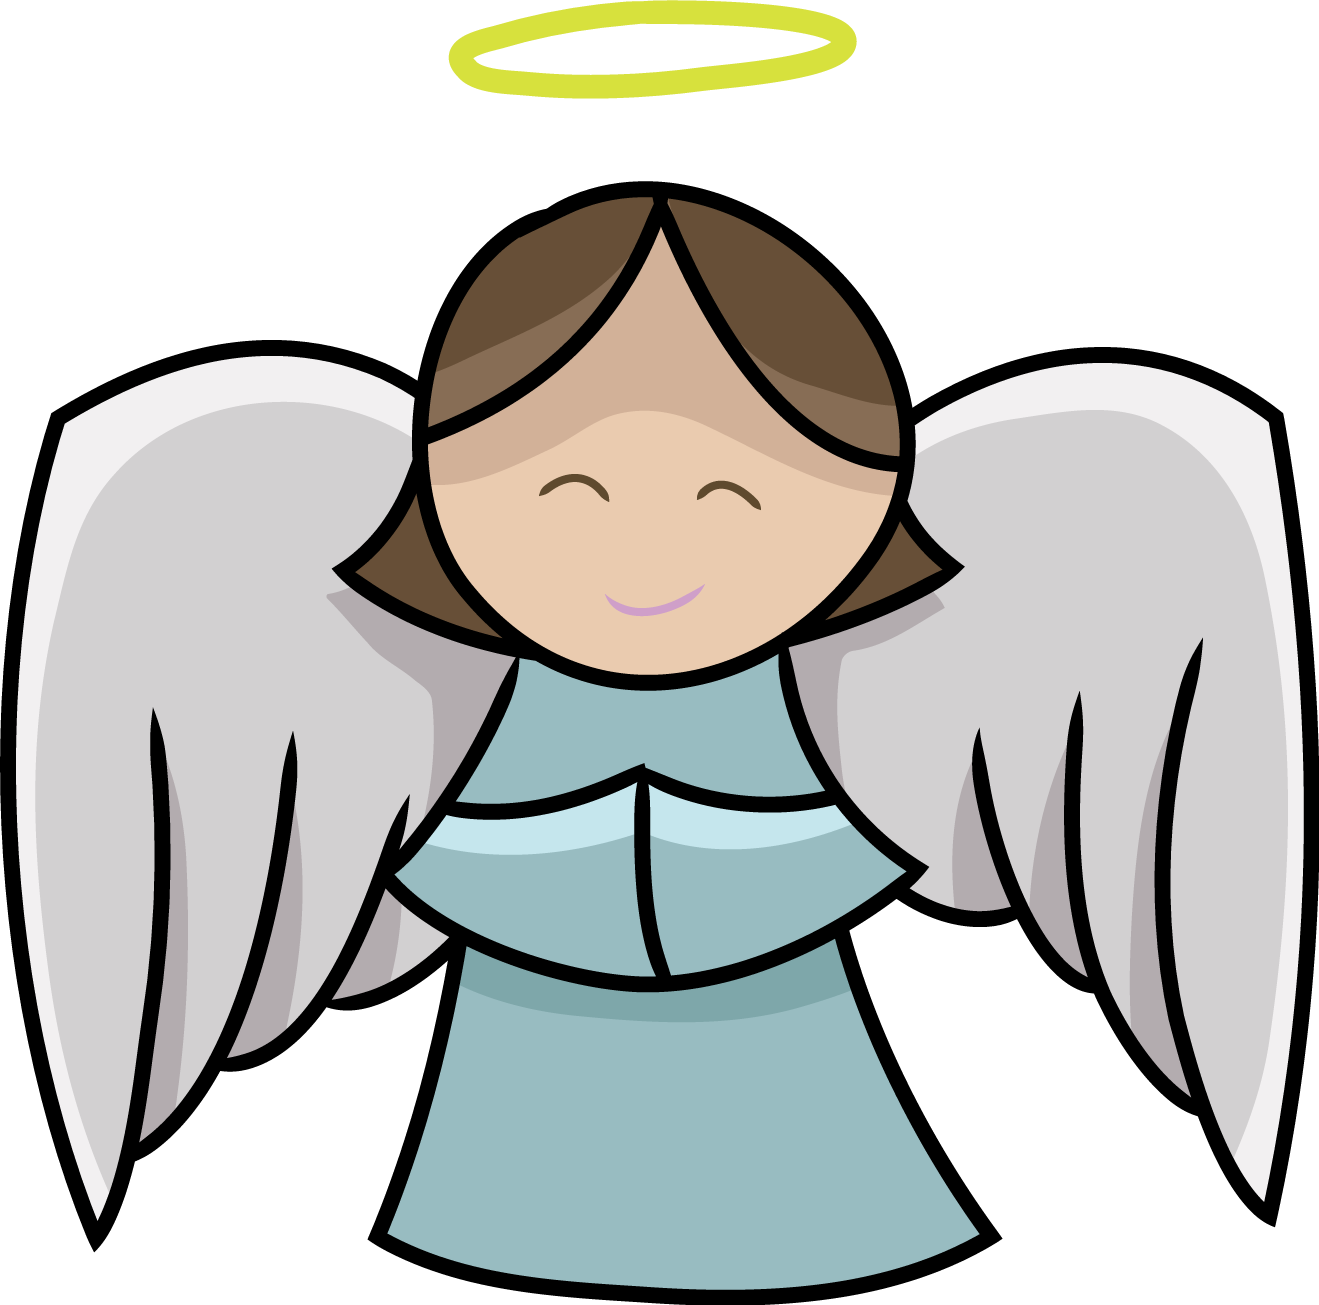 Angel clipart #2, Download drawings